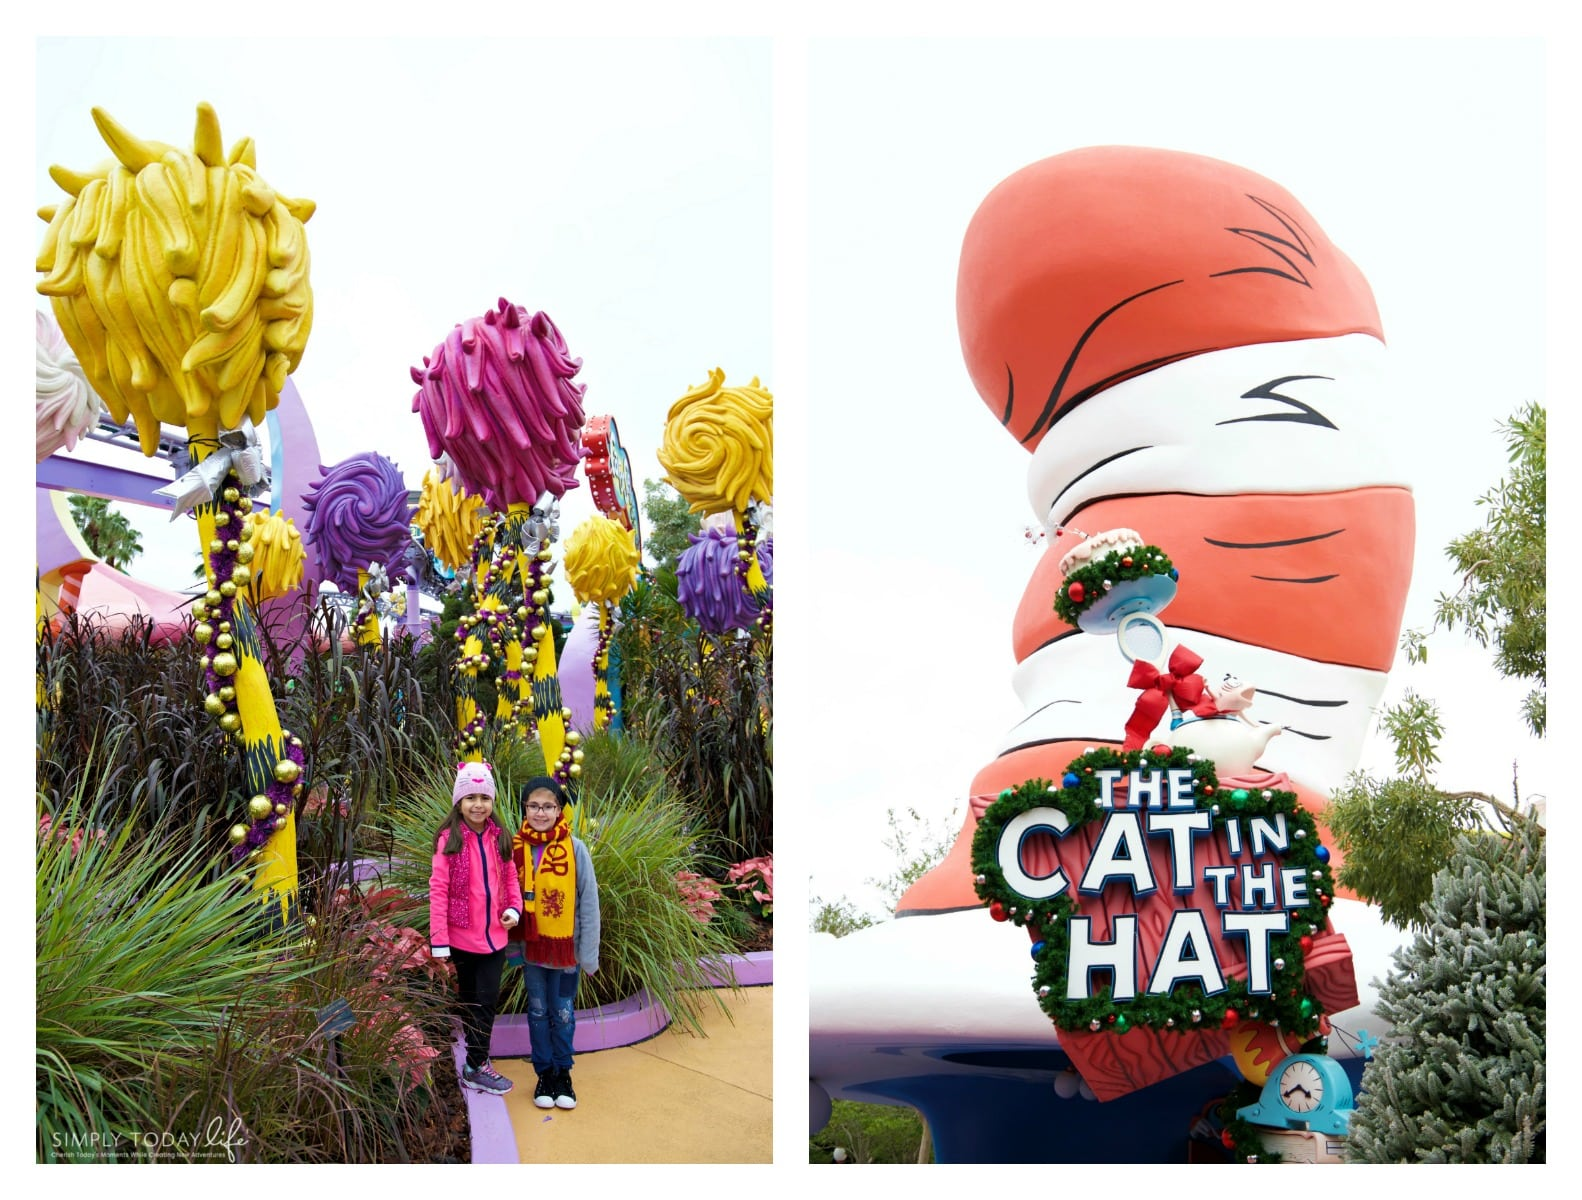 Family Guide To Celebrating the Holidays at Universal Orlando Resort - Seuss Landing Holidays